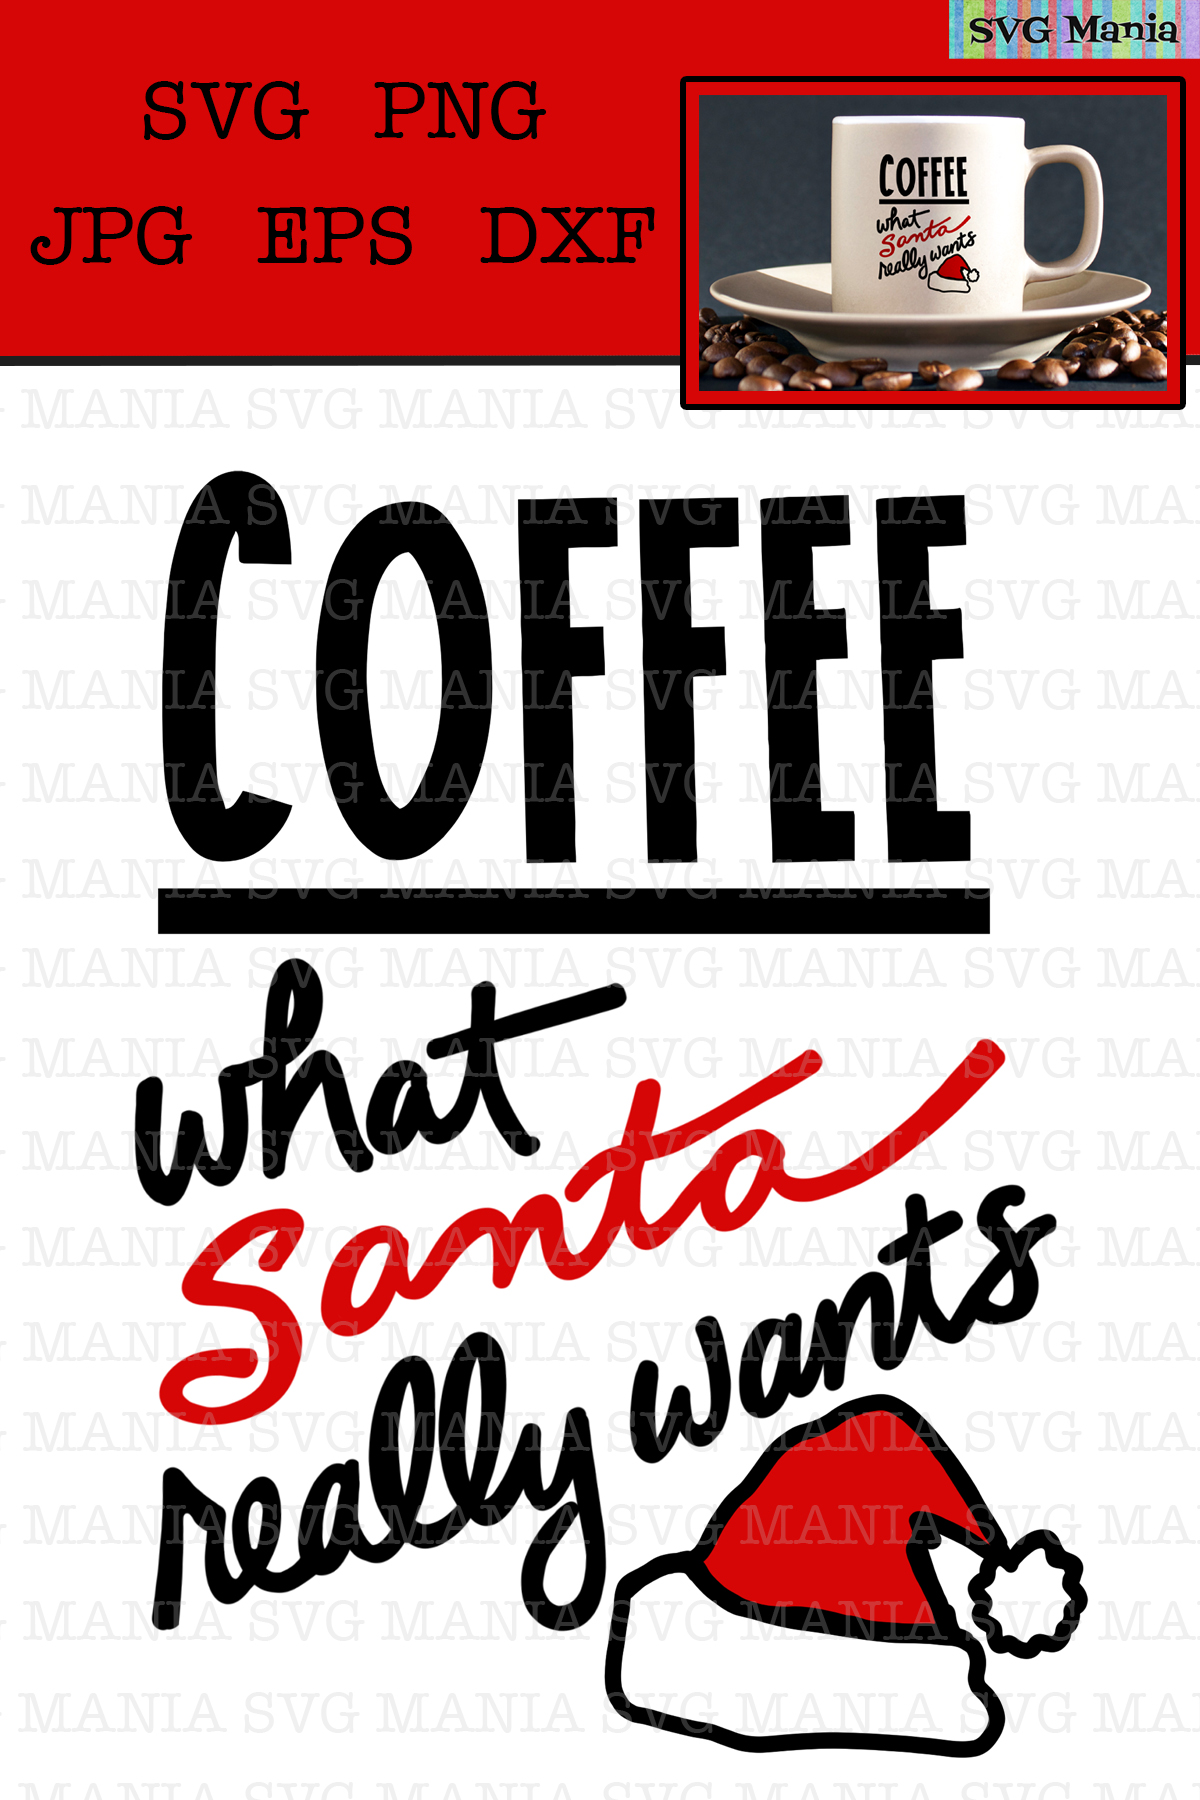 Santa Wants Coffee SVG File, Funny Christmas Coffee SVG File example image 2